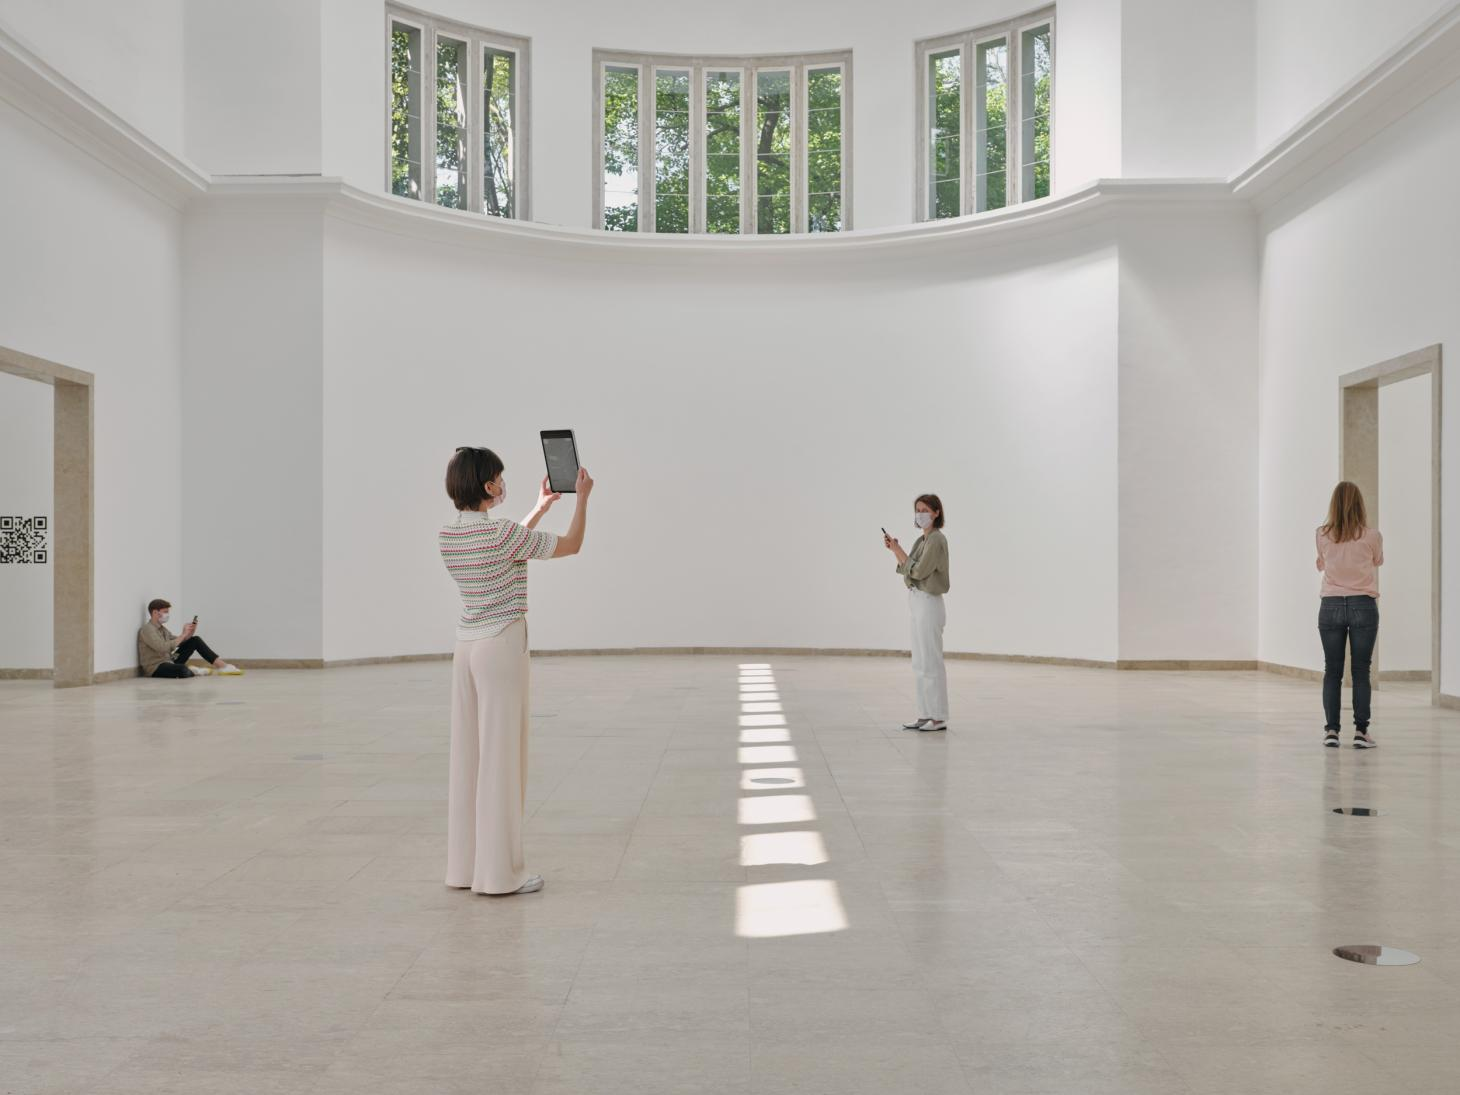 the German pavilion in the 2021 Venice architecture biennale is empty save for barcodes that allow visitors to watch online films